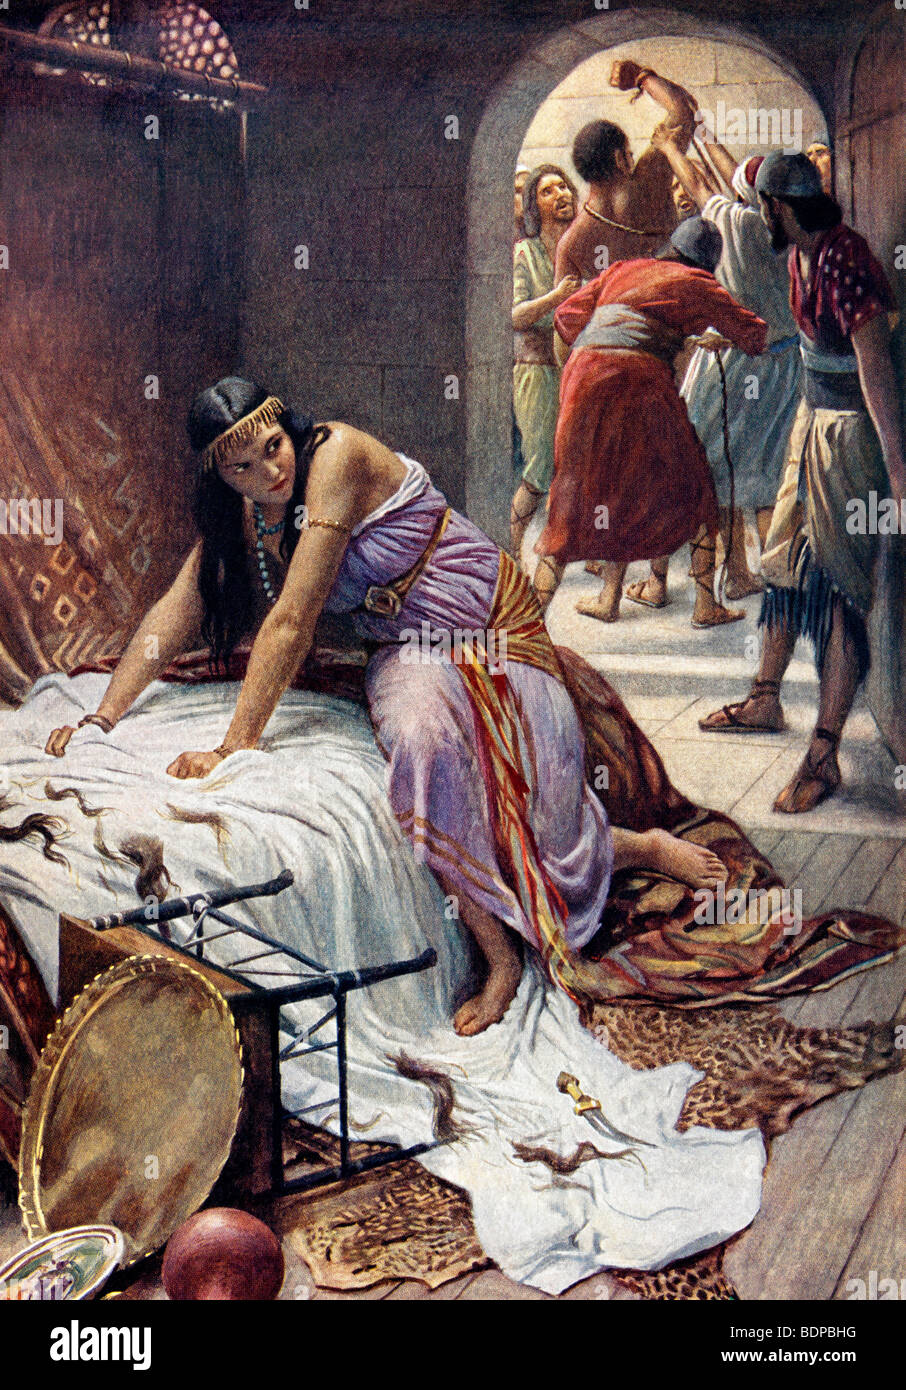 Painting of Delilah illustrating the moment she betrays Samson to his enemies after cutting off seven locks of his - Stock Image